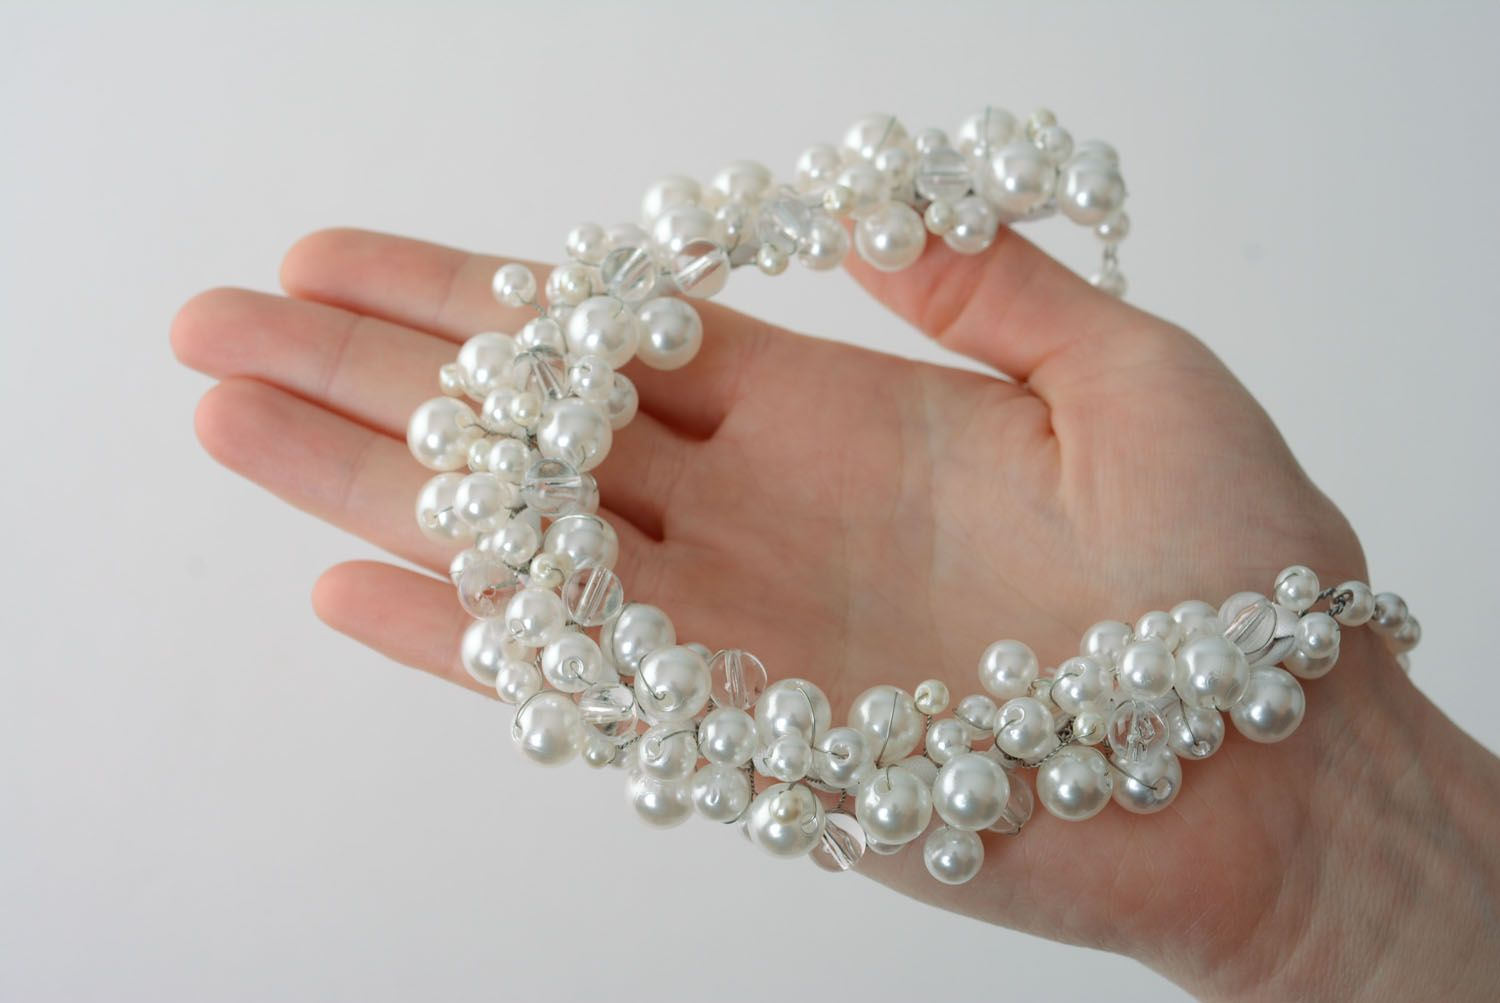 Necklace with pearl-like beads photo 4